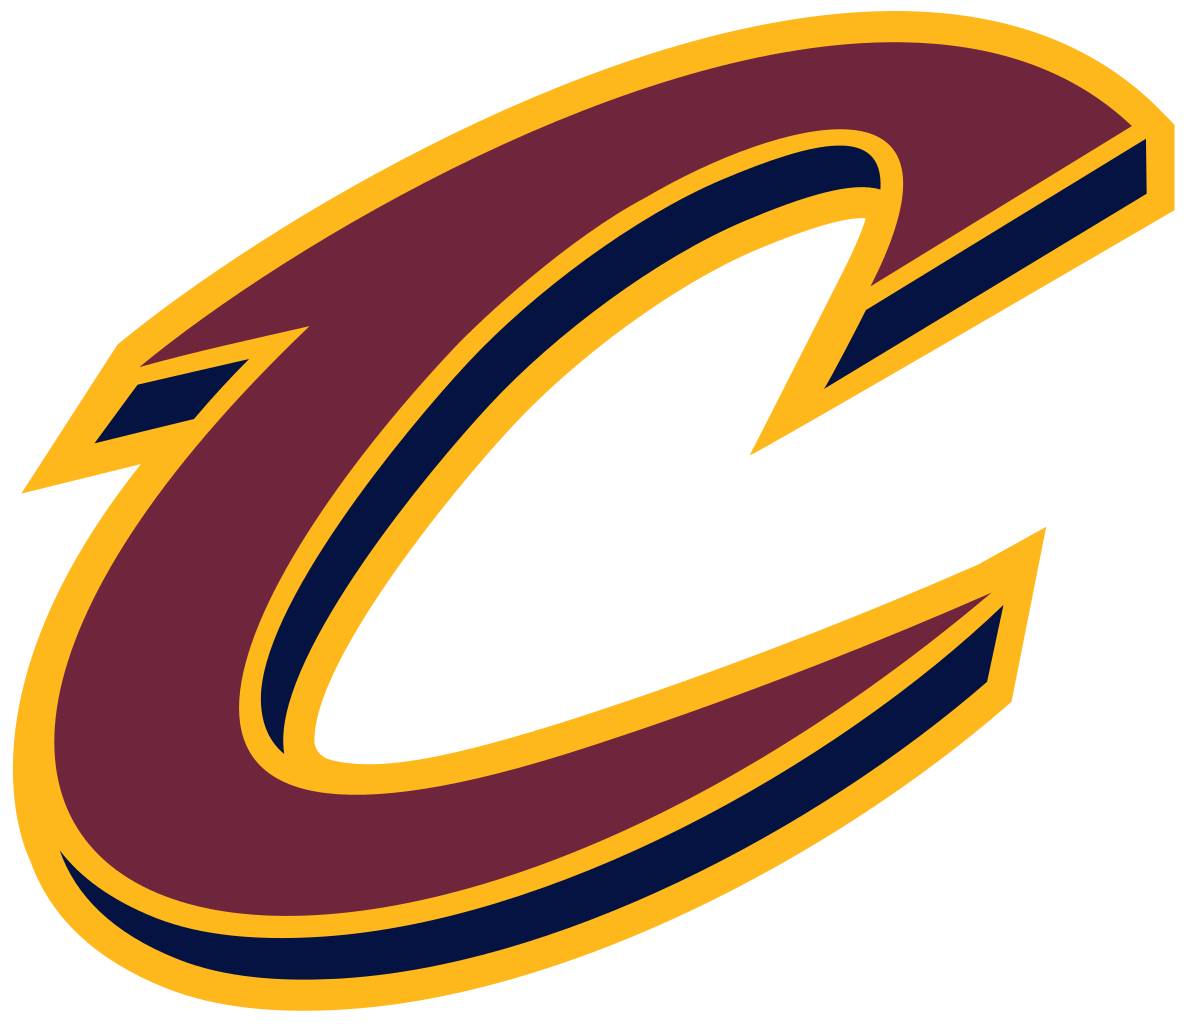 File:Cleveland Cavaliers secondary logo.svg.